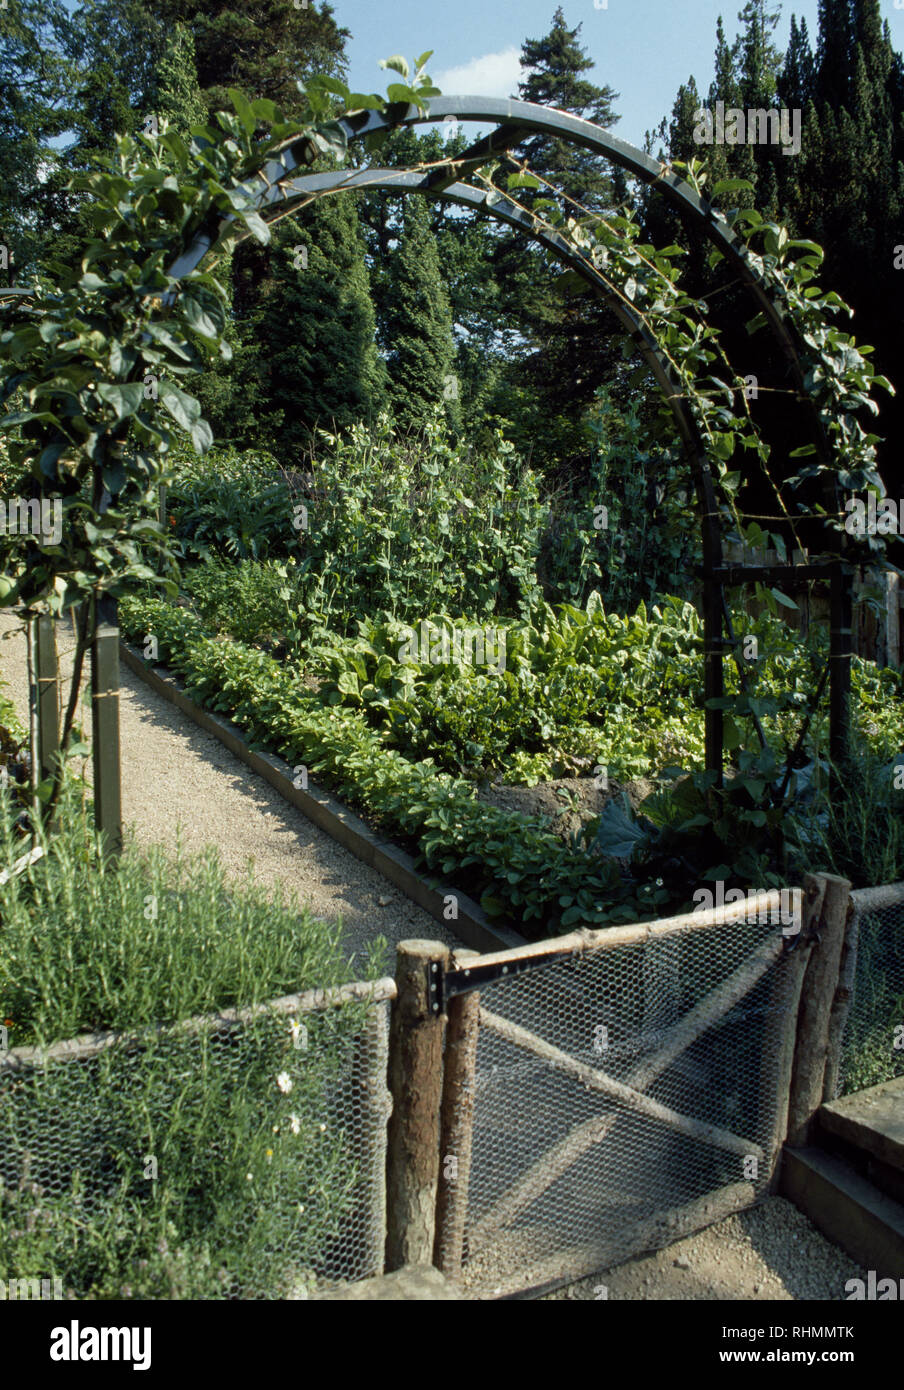 Cordon Fruit Trees On Metal Arches In Large Vegetable Garden Stock